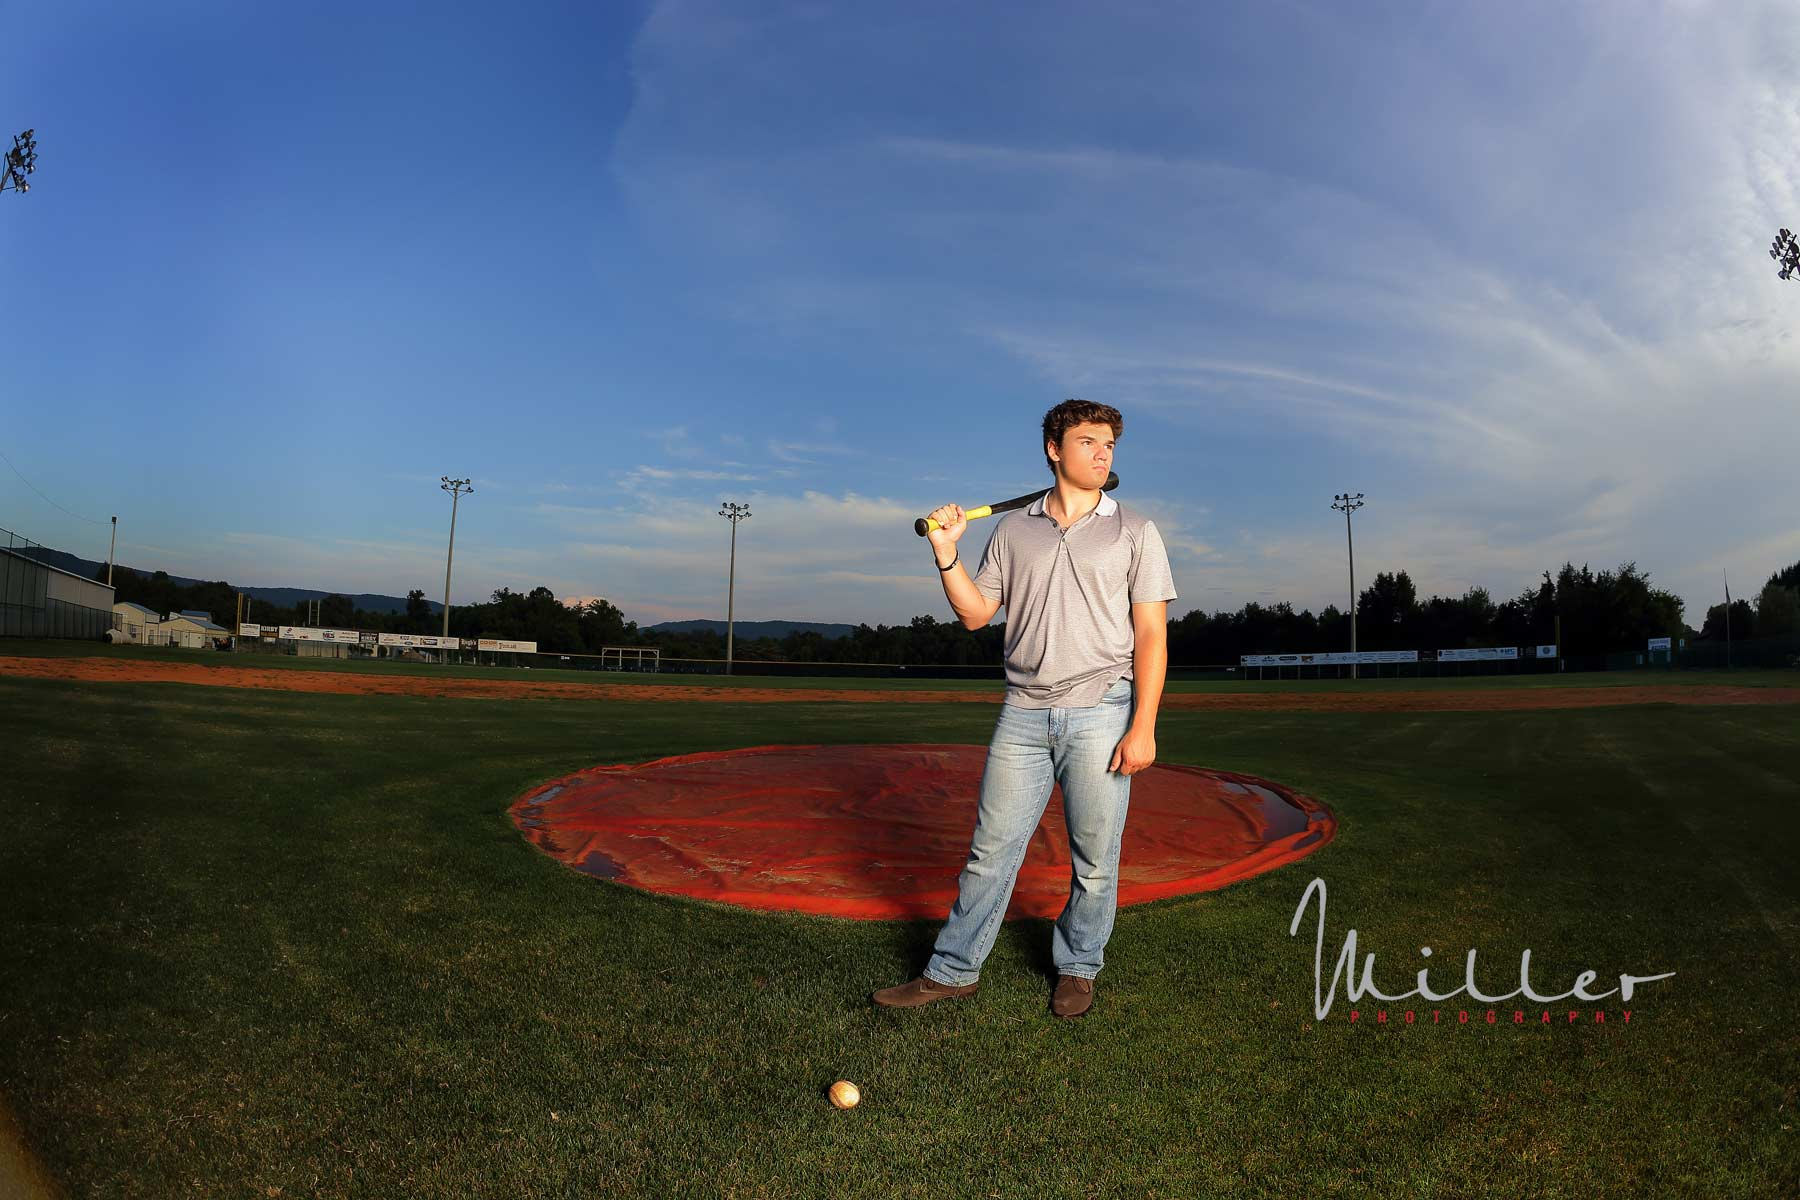 Casual Senior Portrait of baseball player